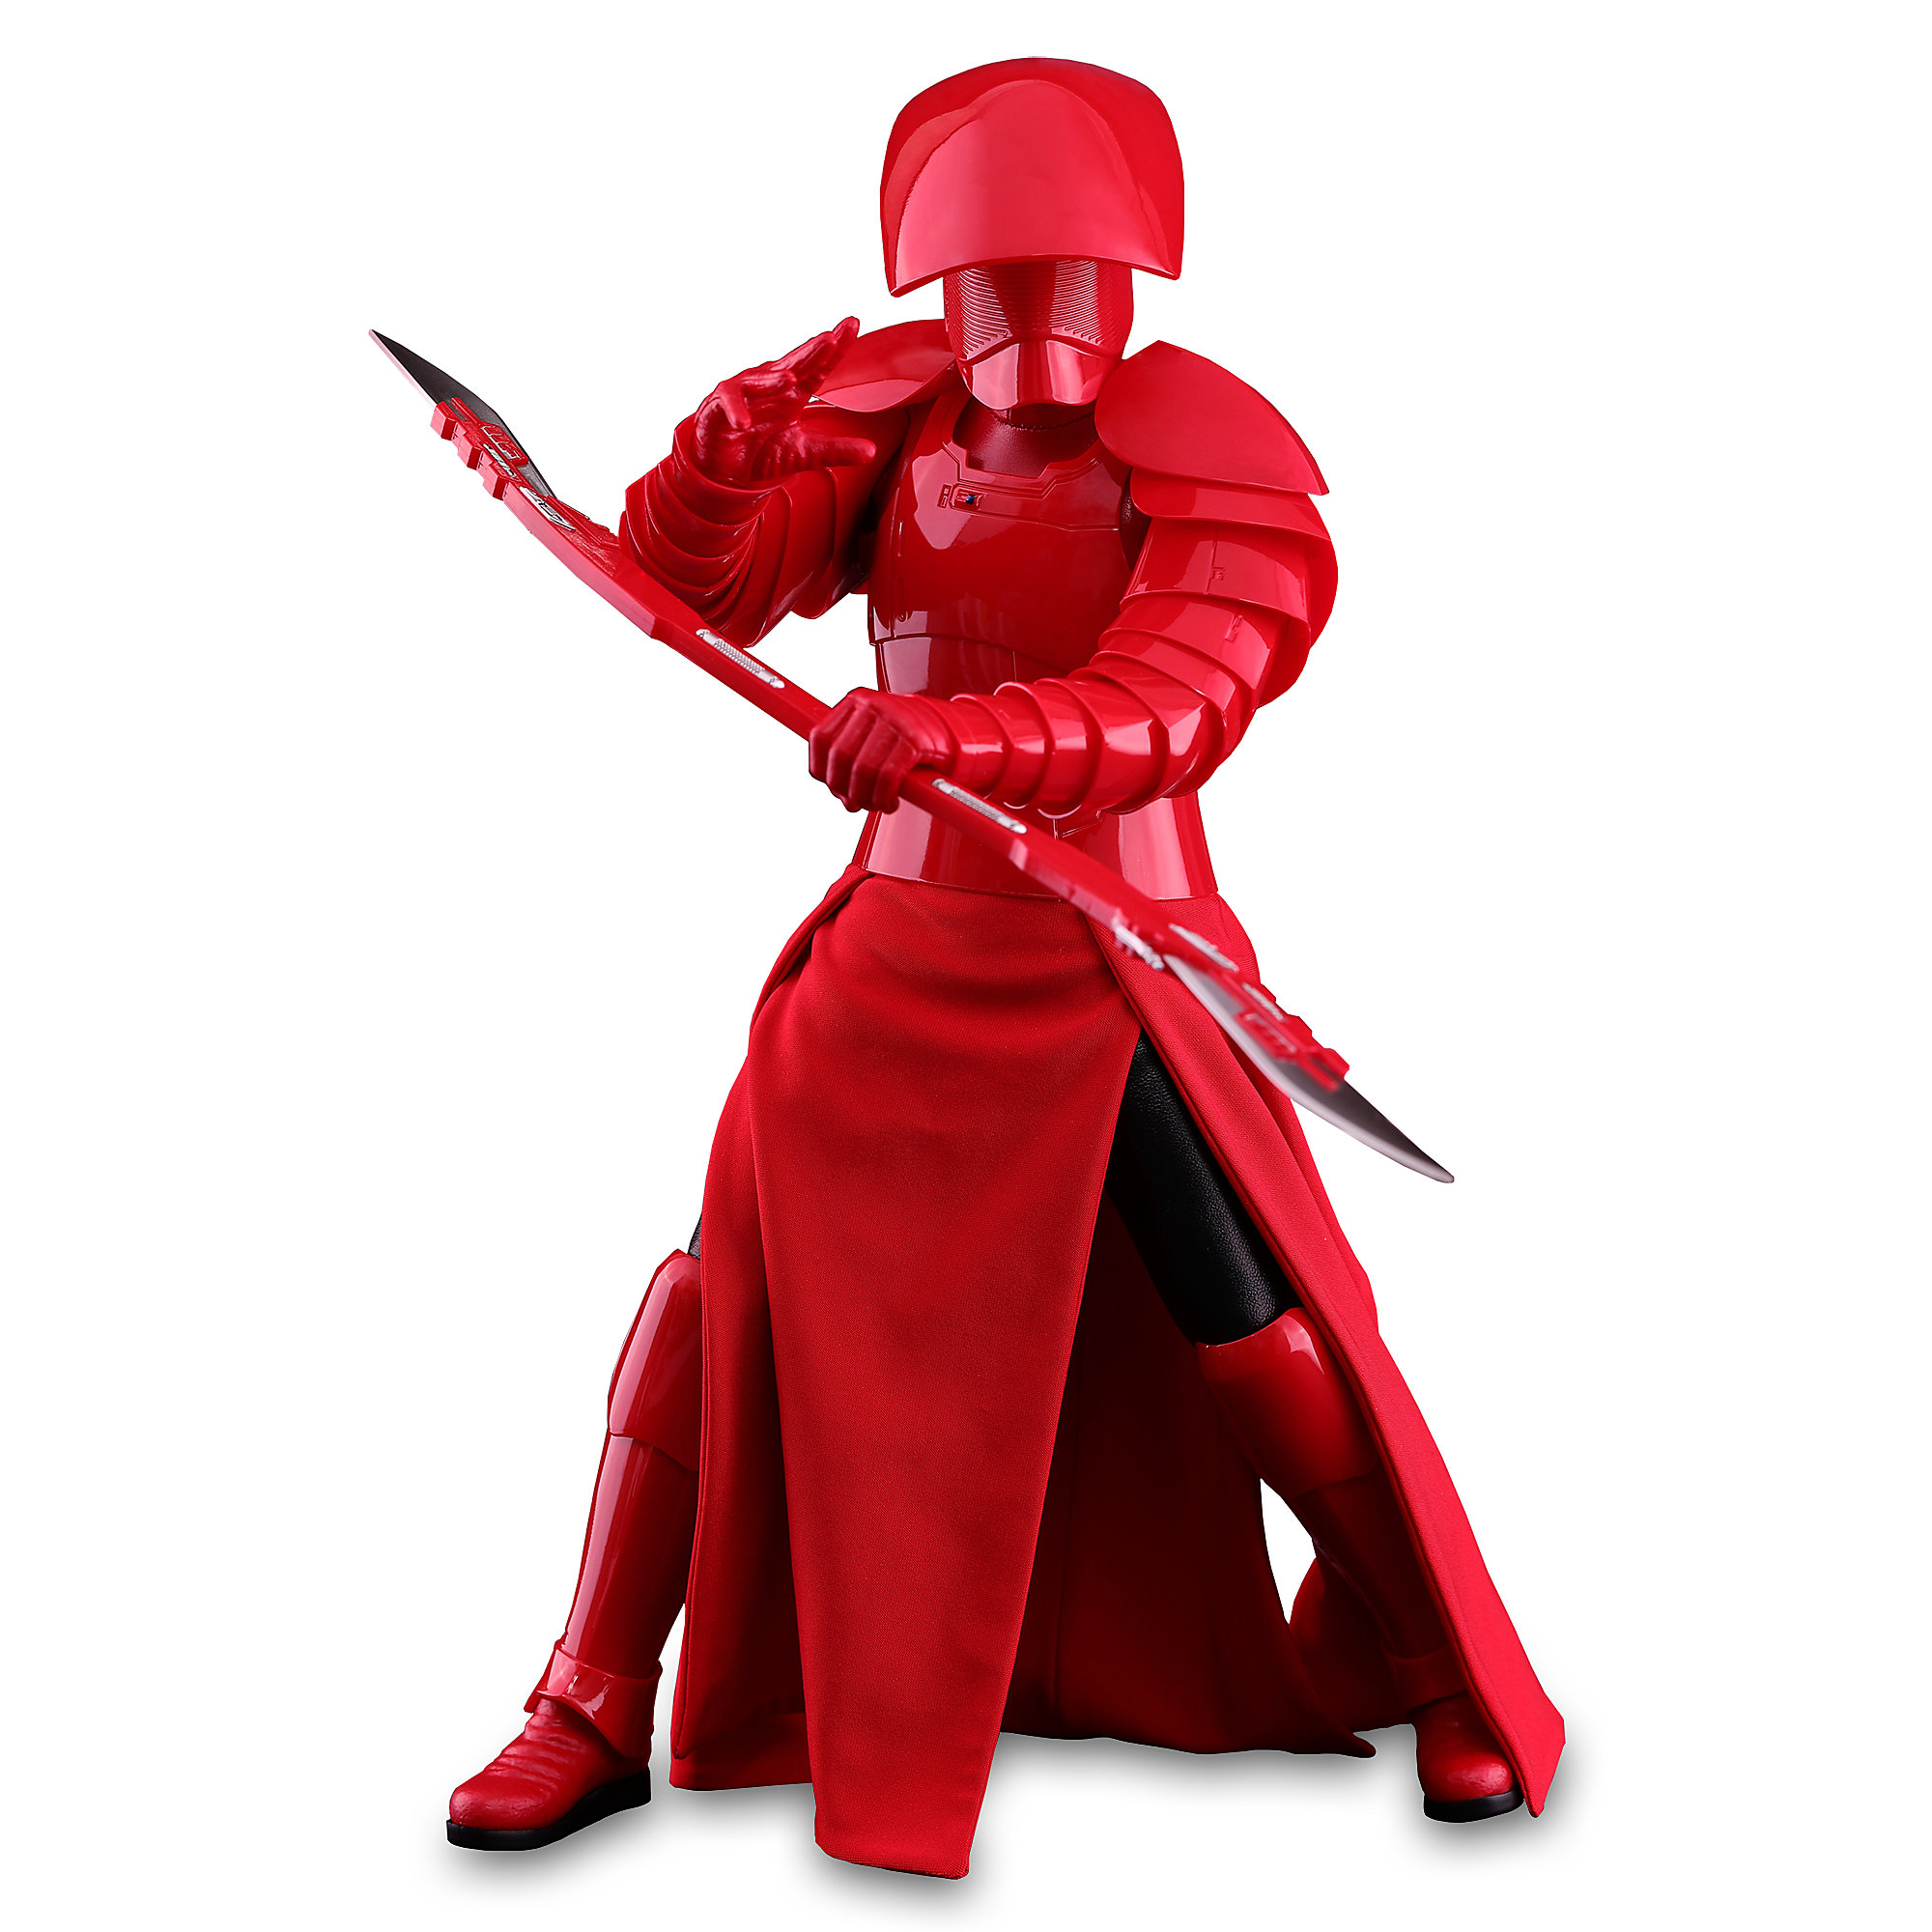 Praetorian Guard with Double Blade Sixth Scale Figure by Sideshow Collectibles